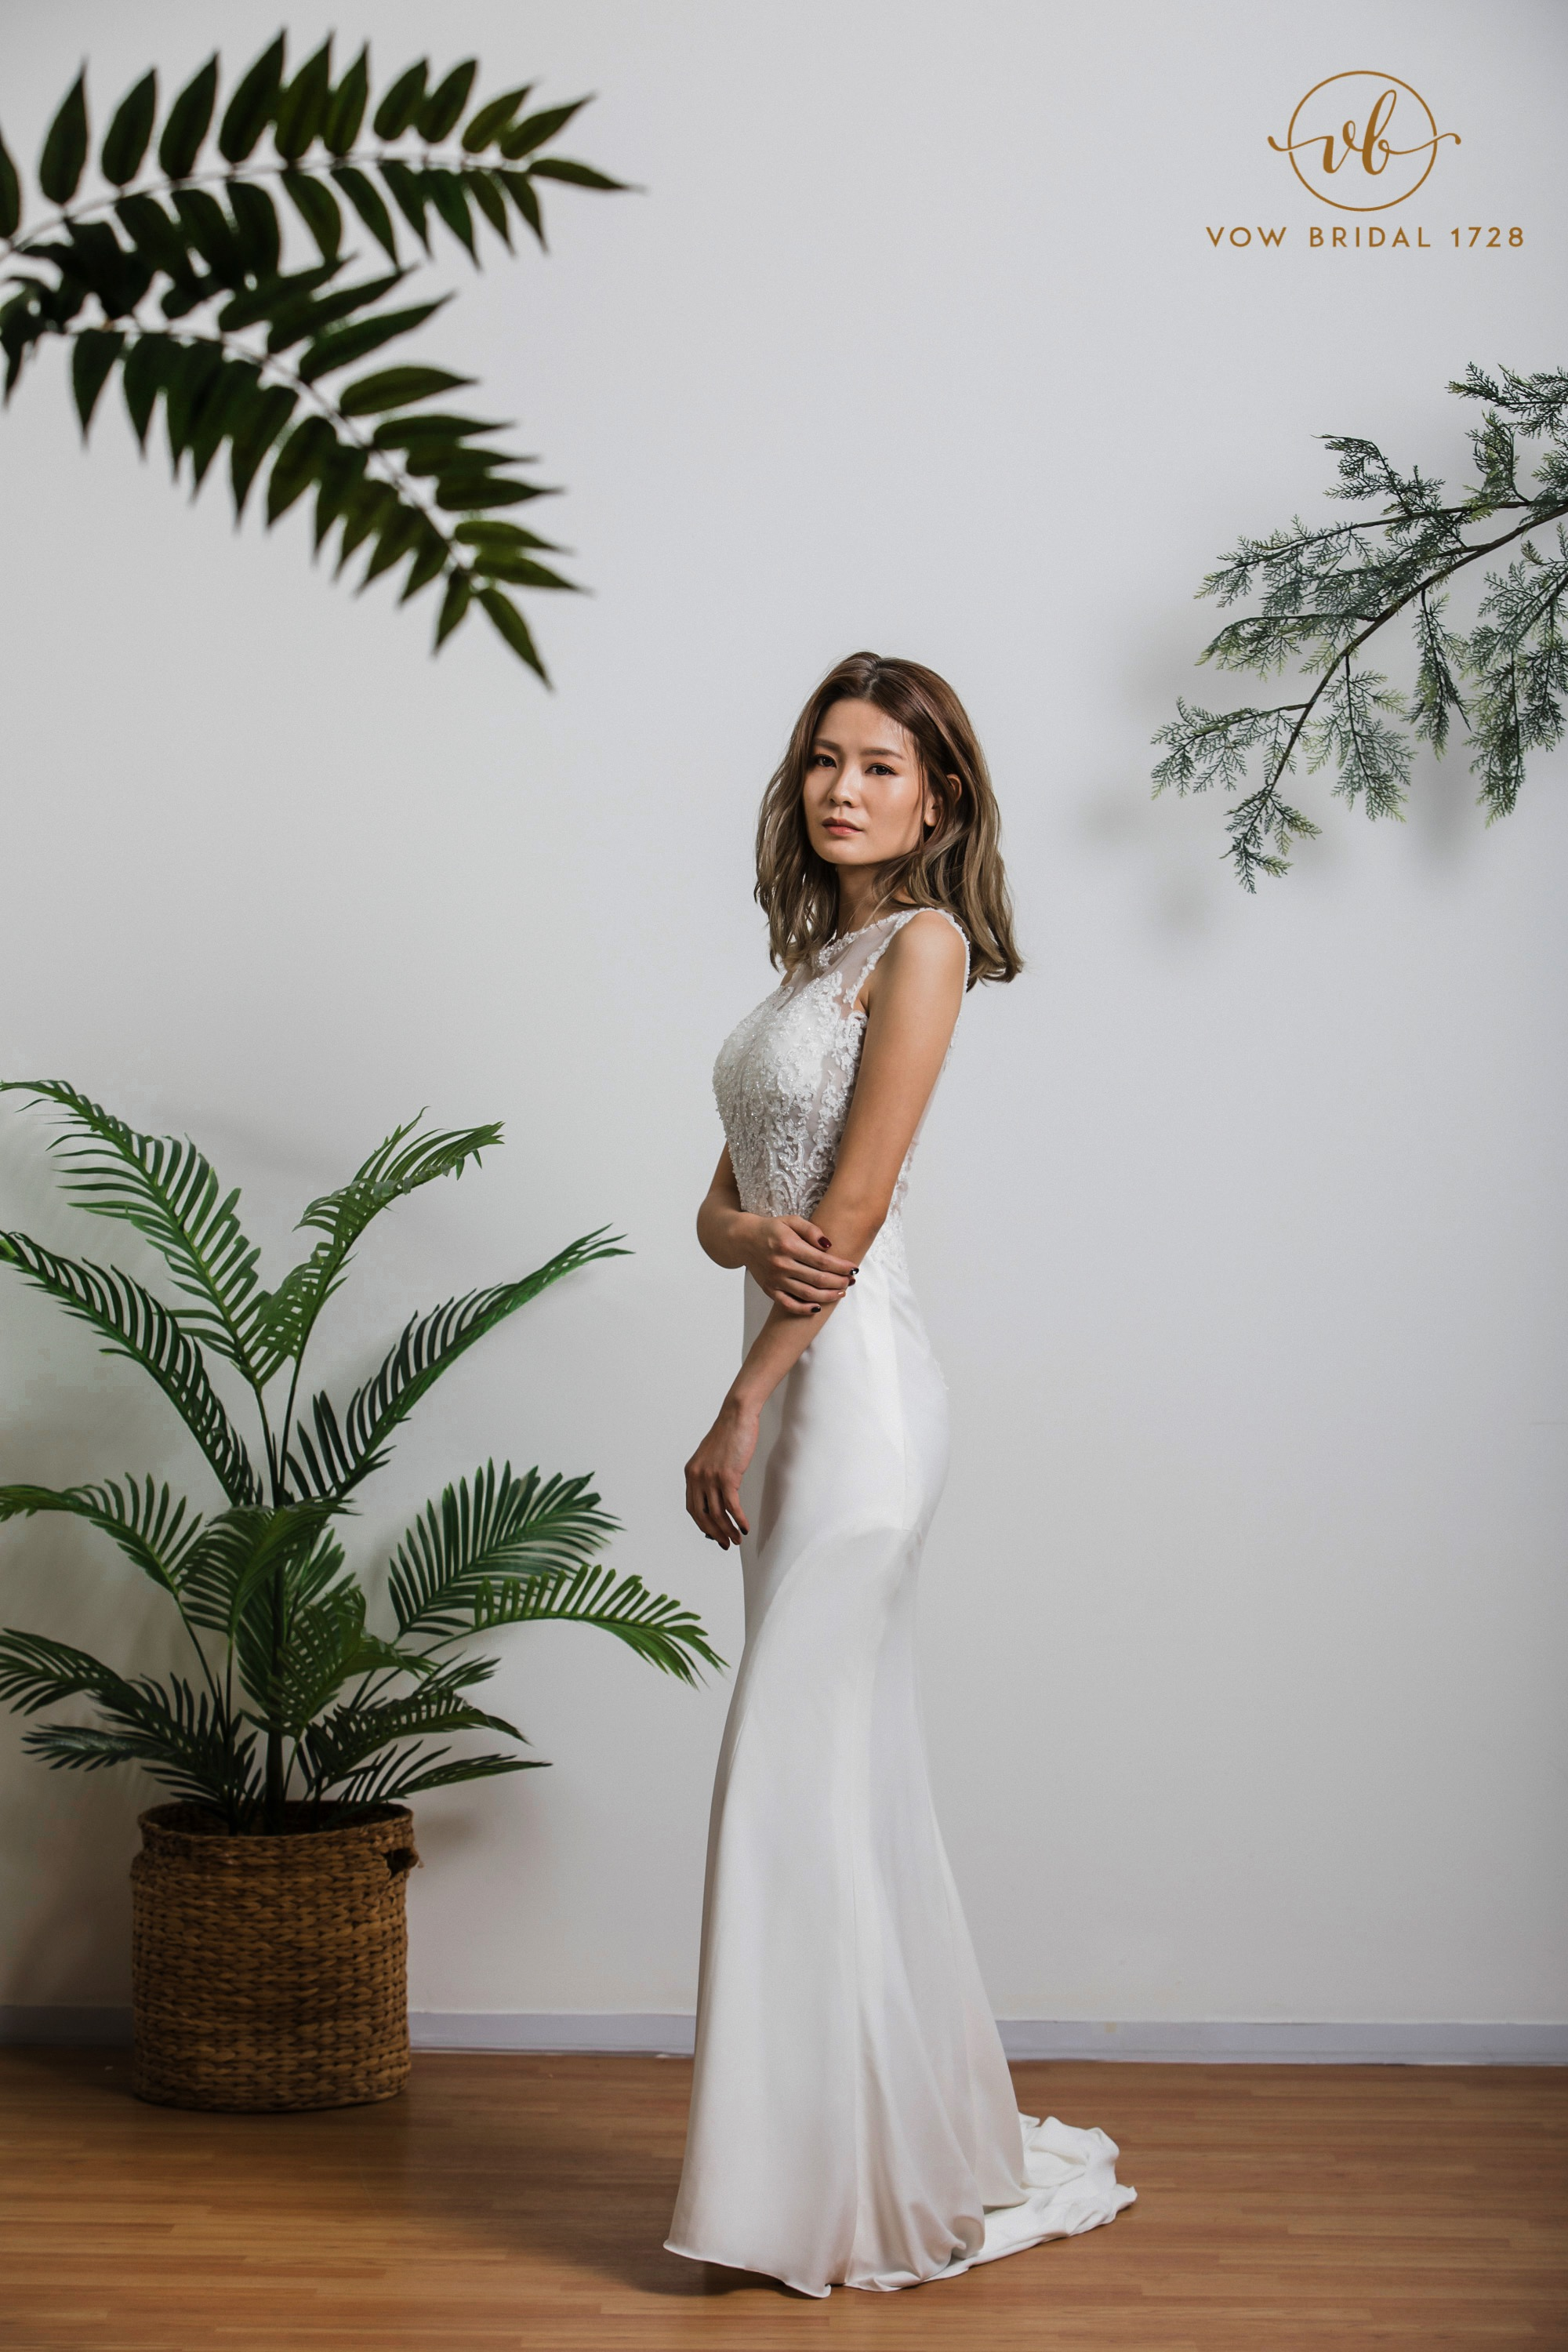 Bridal Gown Rental Malaysia | Vow Bridal 1728